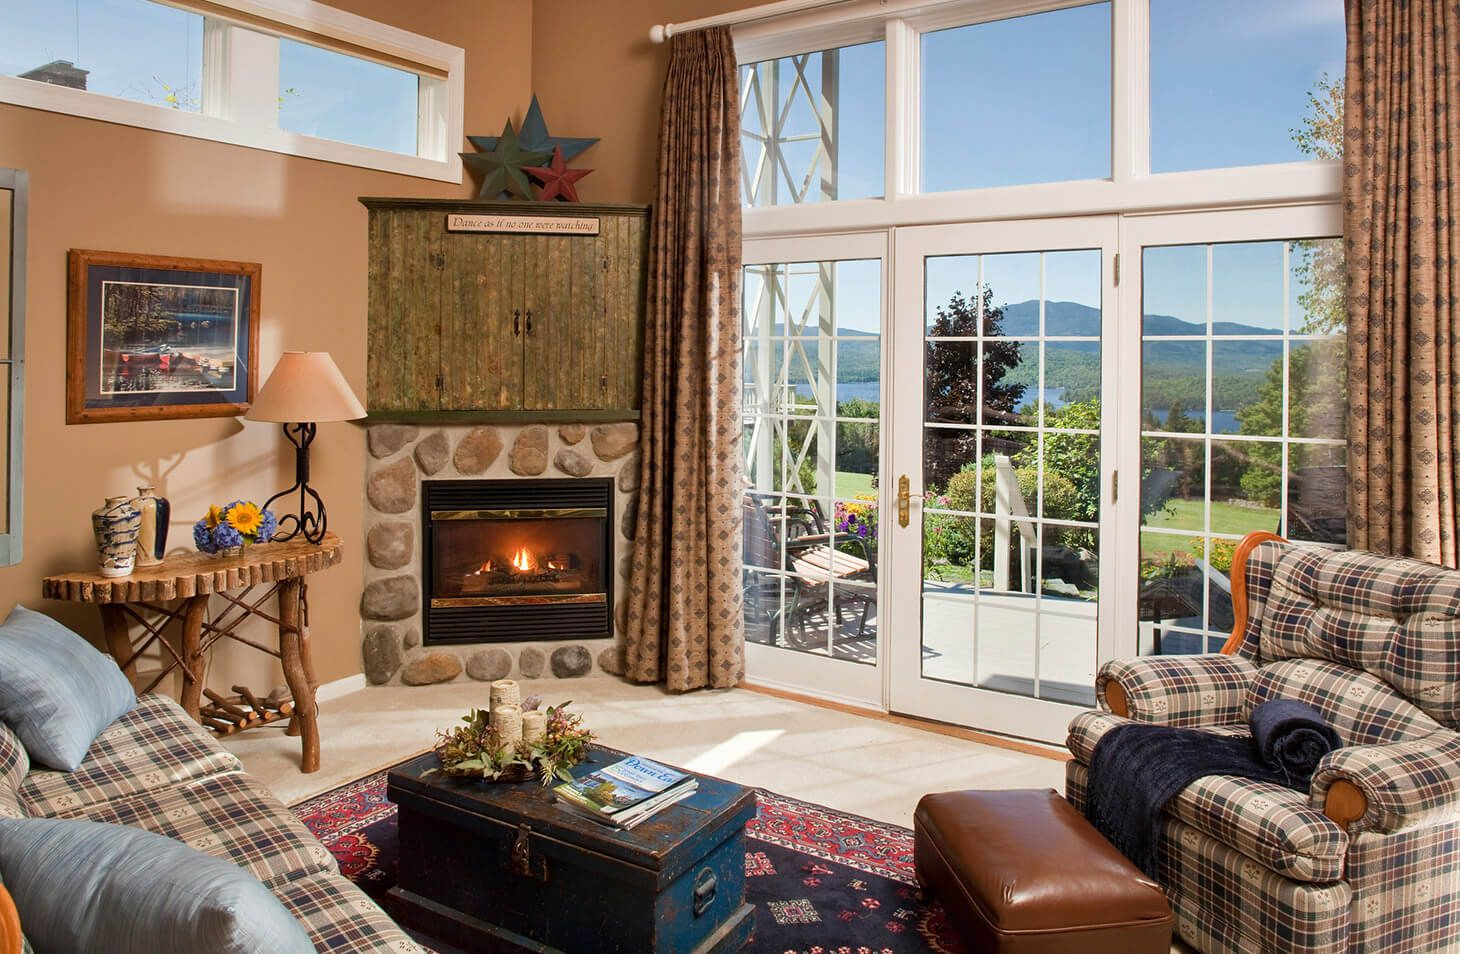 Our Moosehead Lake bed and breakfast in Maine is a 4